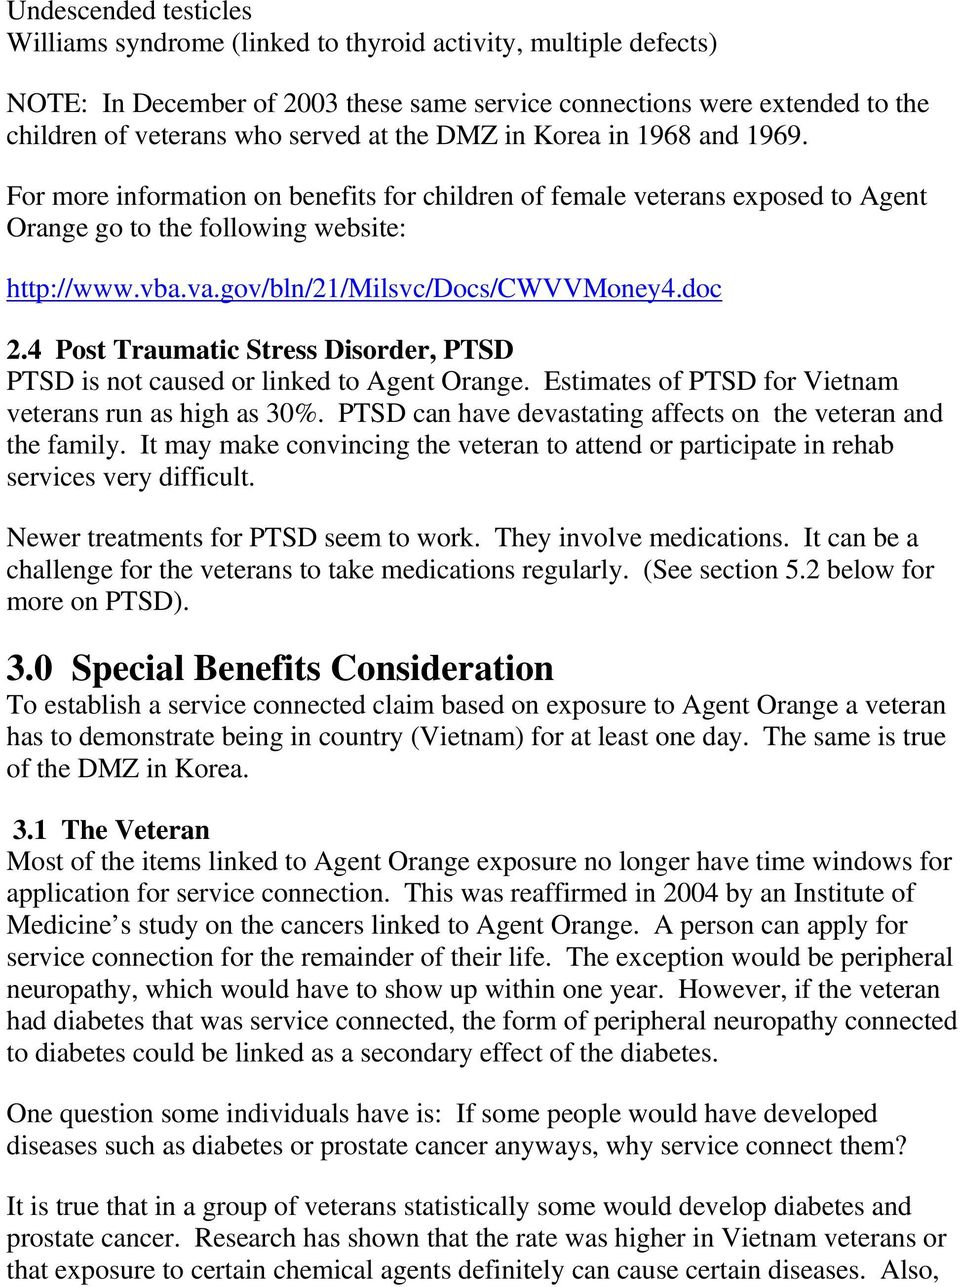 gov/bln/21/milsvc/docs/cwvvmoney4.doc 2.4 Post Traumatic Stress Disorder, PTSD PTSD is not caused or linked to Agent Orange. Estimates of PTSD for Vietnam veterans run as high as 30%.